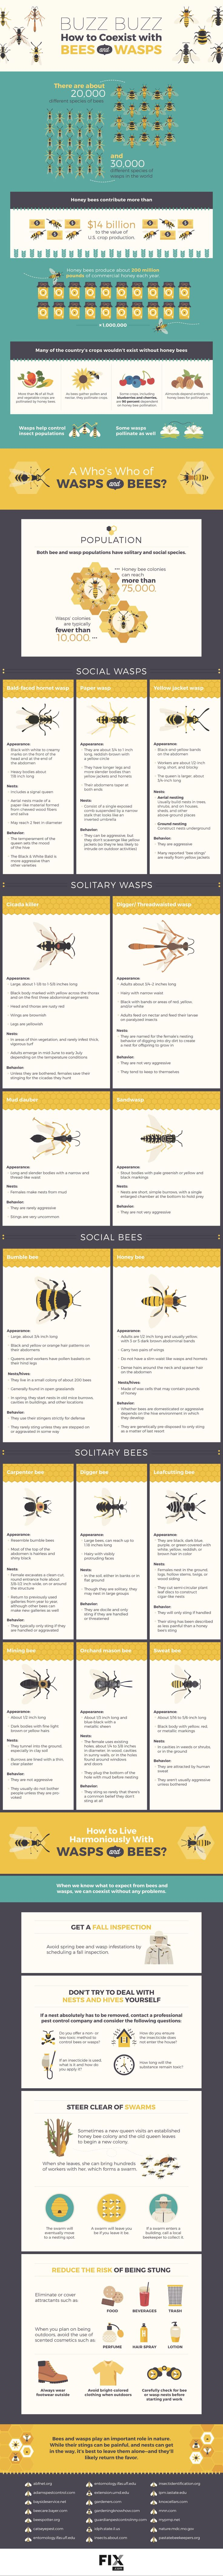 Bees and wasps are an essential part of our ecosystem, but their stinger has given them a bad reputation. Despite what you might think, many bees and wasps would prefer to avoid stinging you and are happy to left alone. Here are some ways which you can coexist with our buzzing friends.